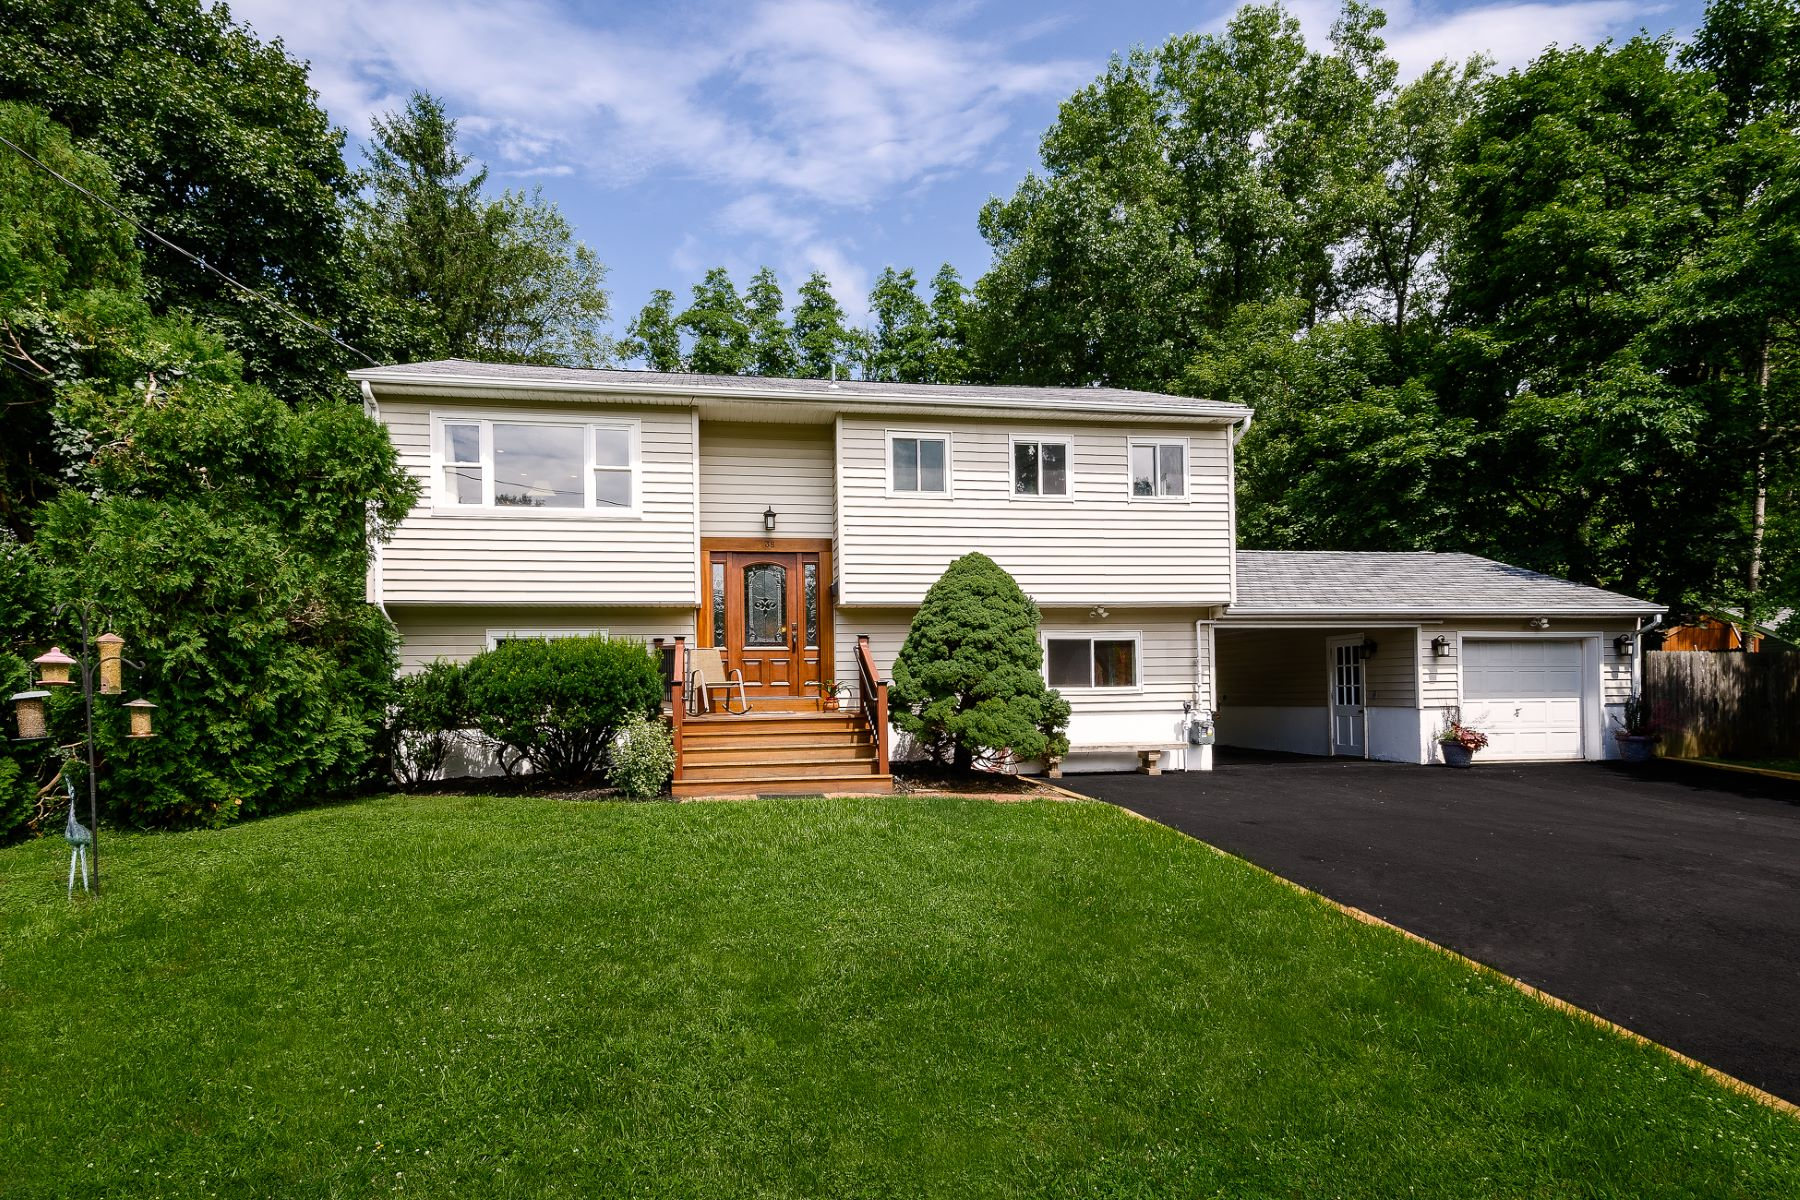 Single Family Homes for Sale at A Stylish Update Behind An Unassuming Exterior 38 Taylor Terrace Hopewell, New Jersey 08525 United States